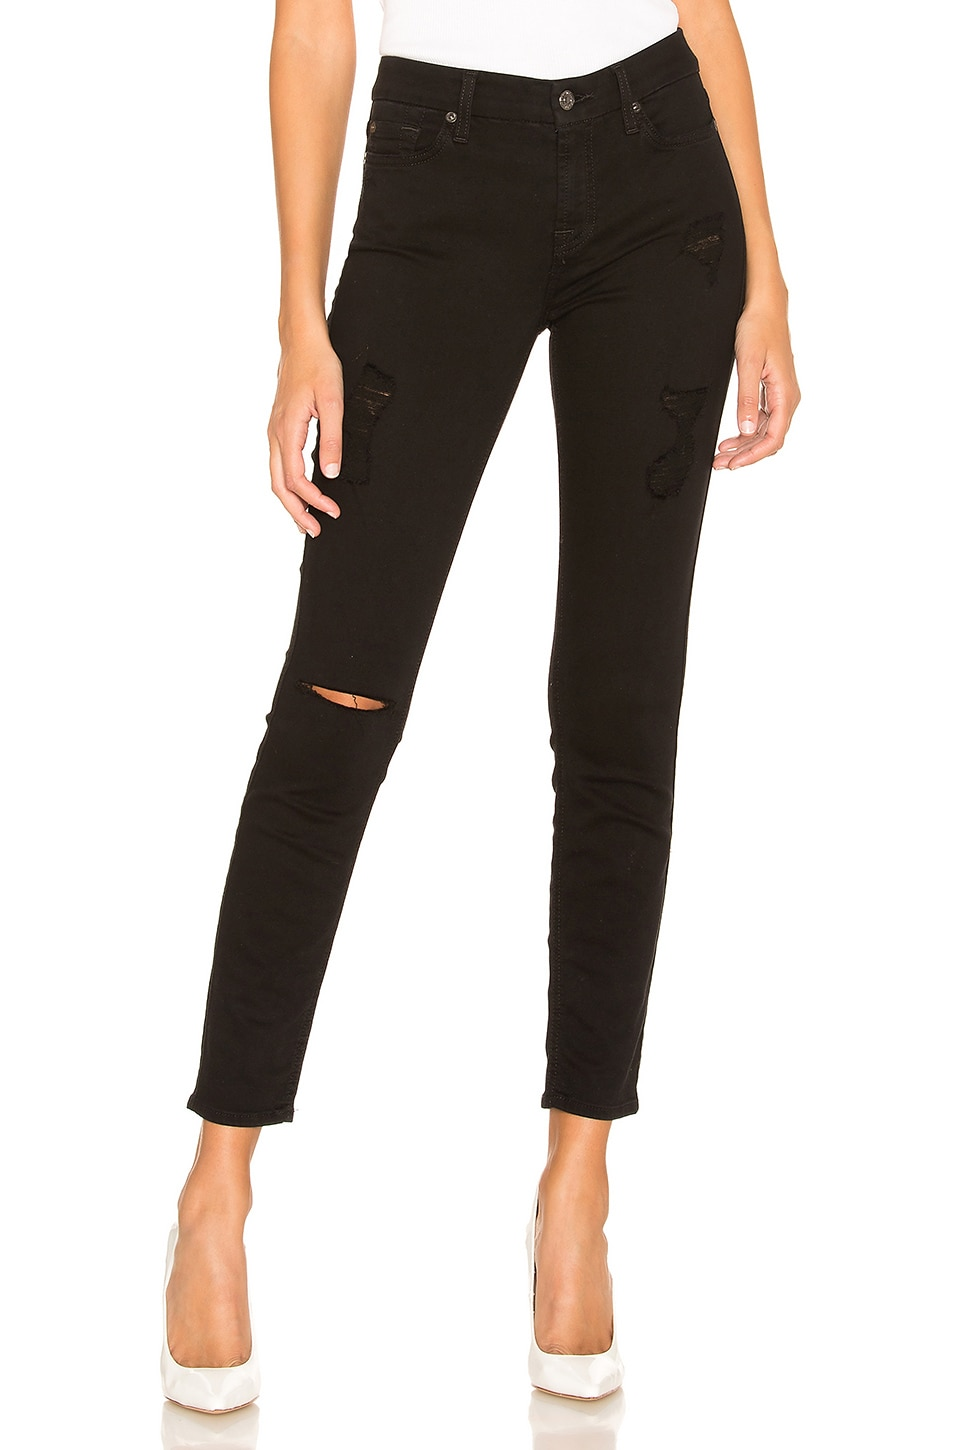 7 For All Mankind Ankle Skinny in Black